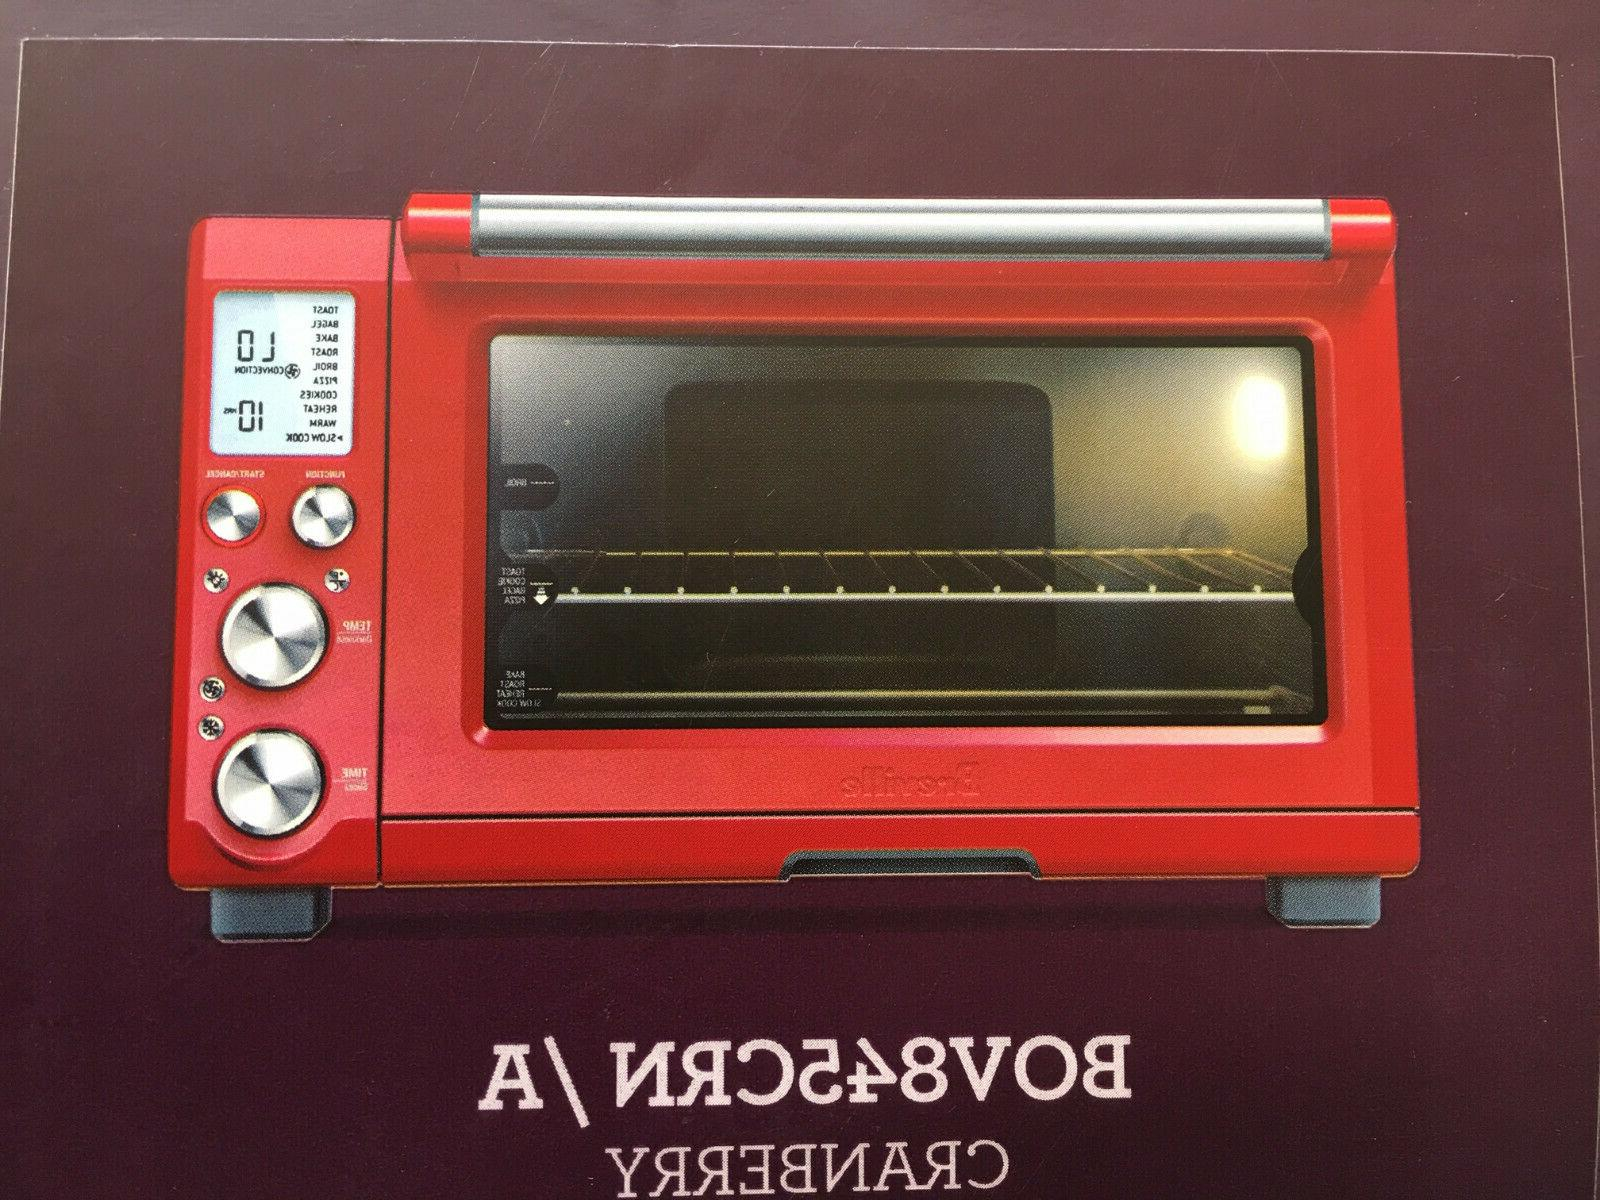 NEW Breville Countertop Convection BOV845CRN, Cranberry